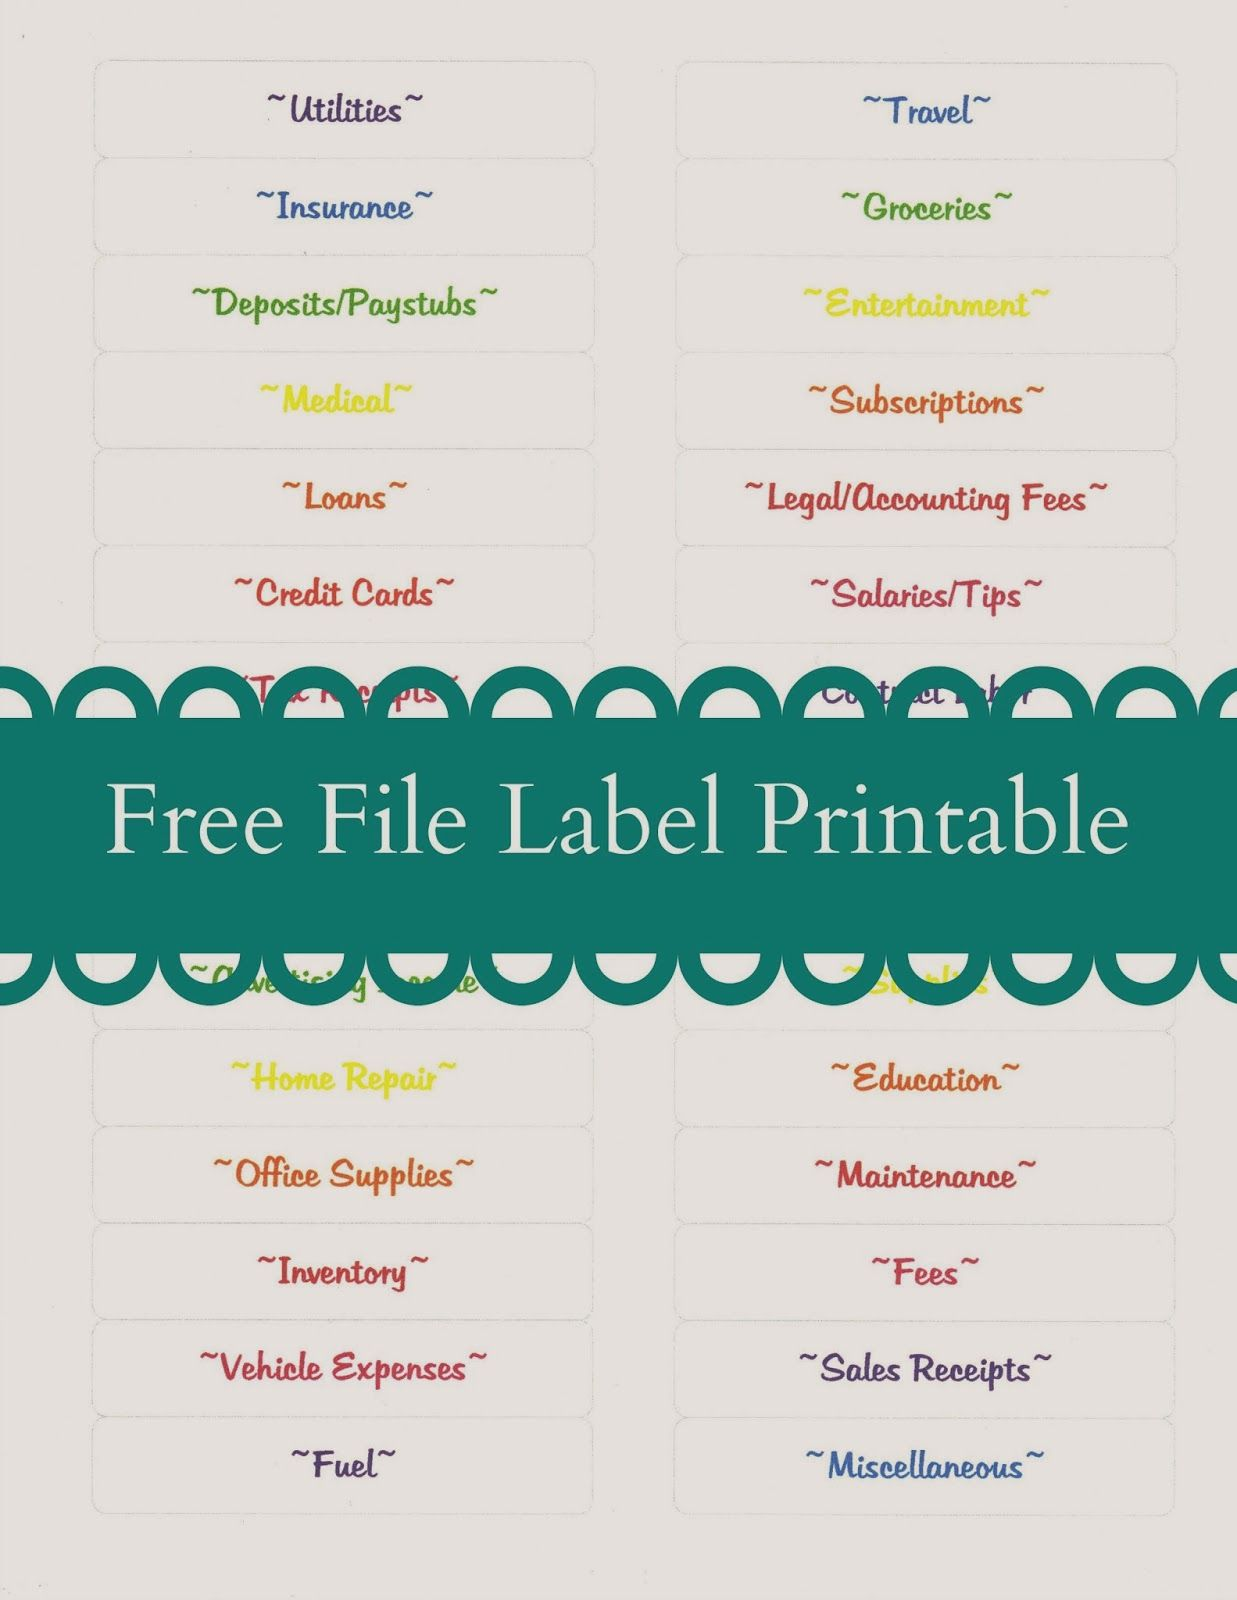 Free File Label Printable Tax Tips For Bloggers And Small Businesses Lear Small Business Organization Small Business Office Organization Business Printables